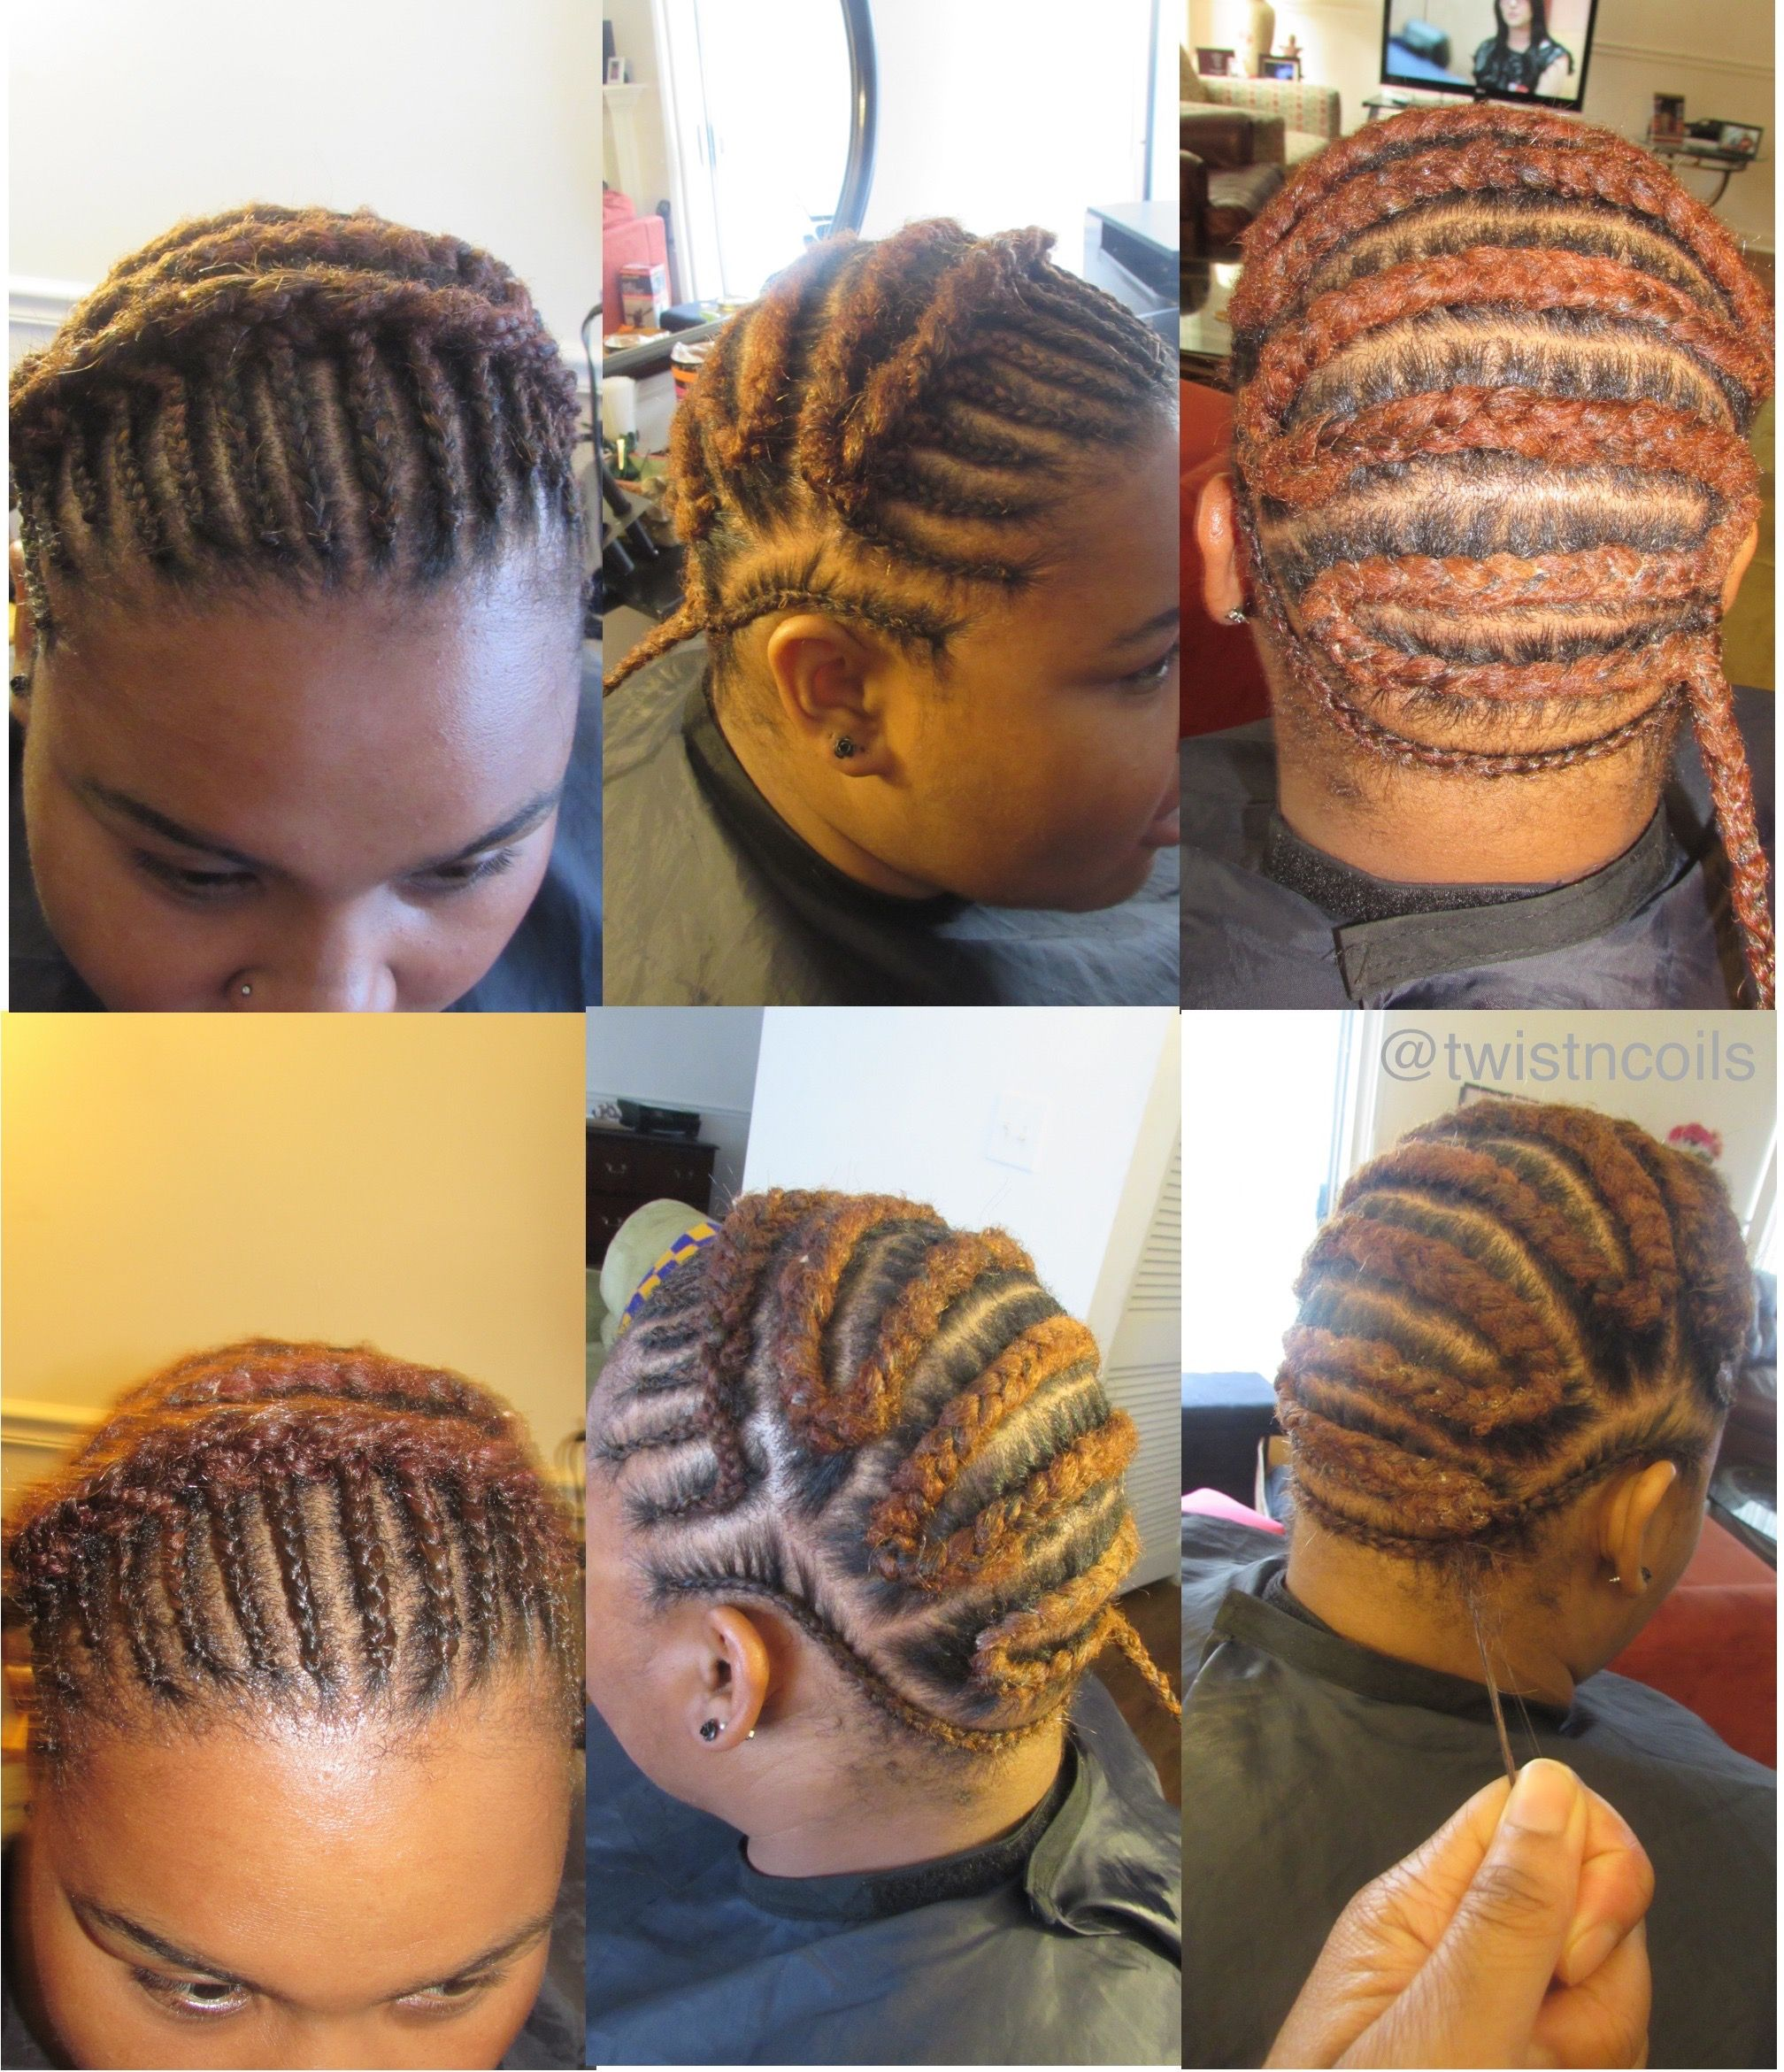 Heres how you can install super long goddess faux locs on any braid pattern for crochet braids tnc jeuxipadfo Gallery